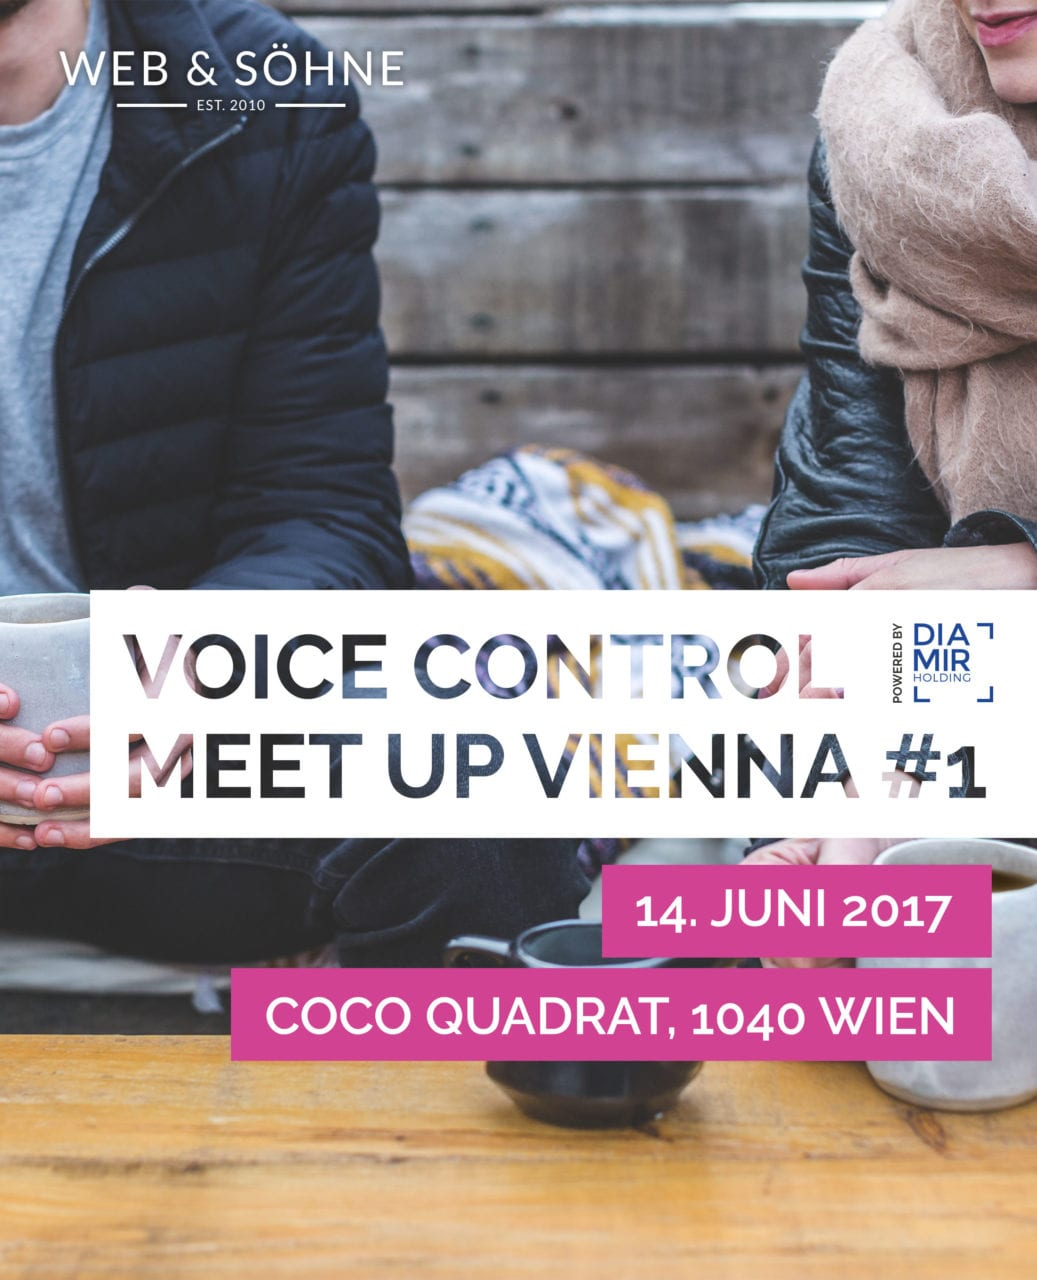 W&S - Voice Control Meetup